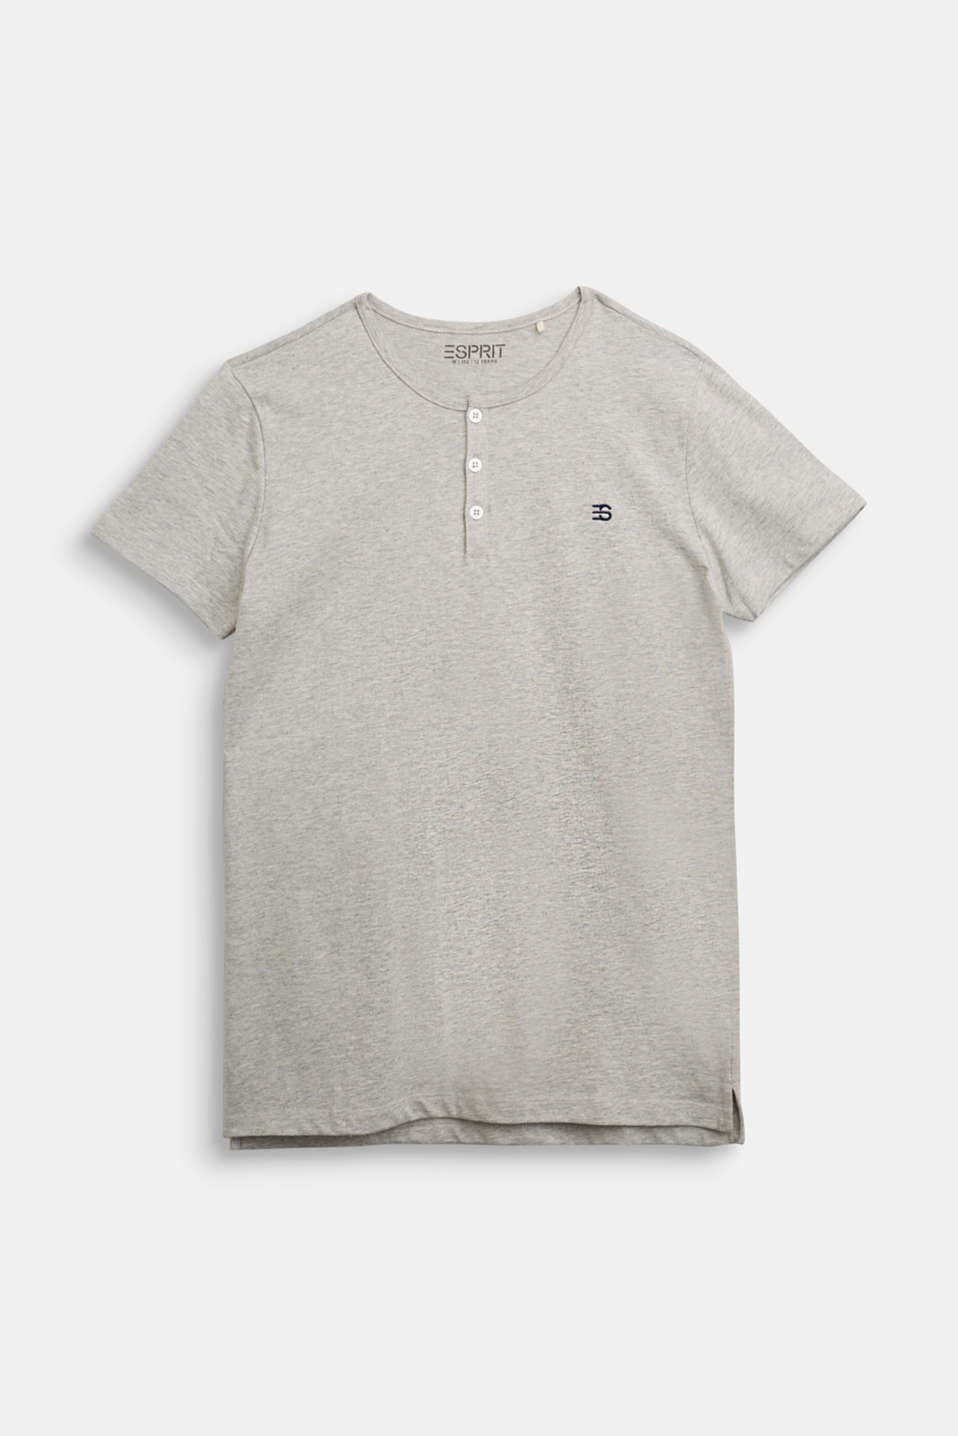 Esprit - Henley T-shirt made of 100% cotton